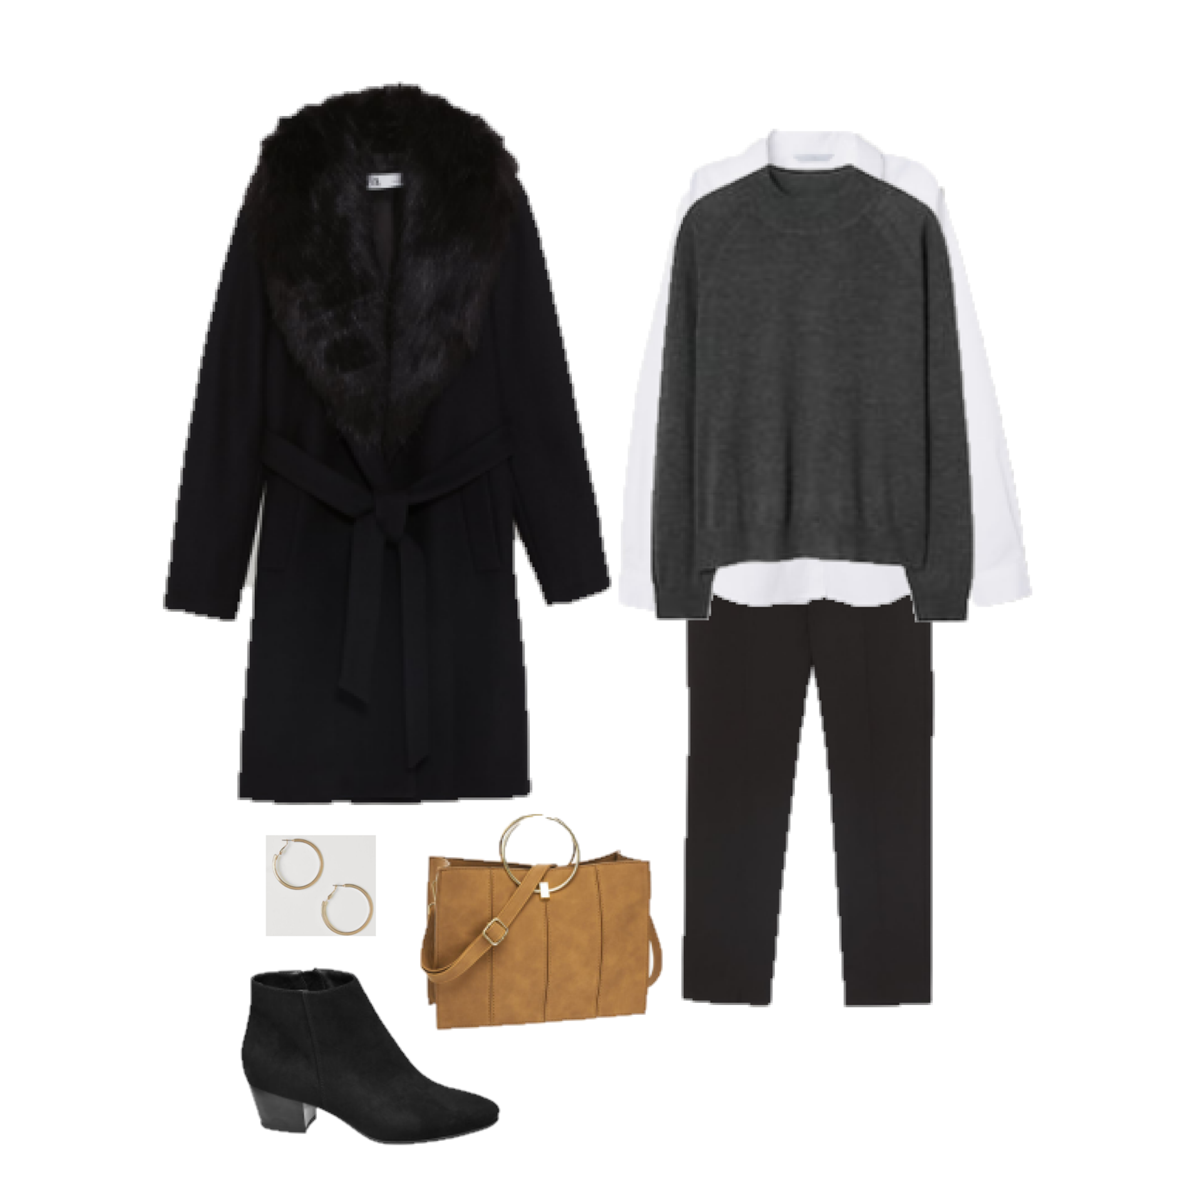 Outfit of the Day: a layered Look for the Office